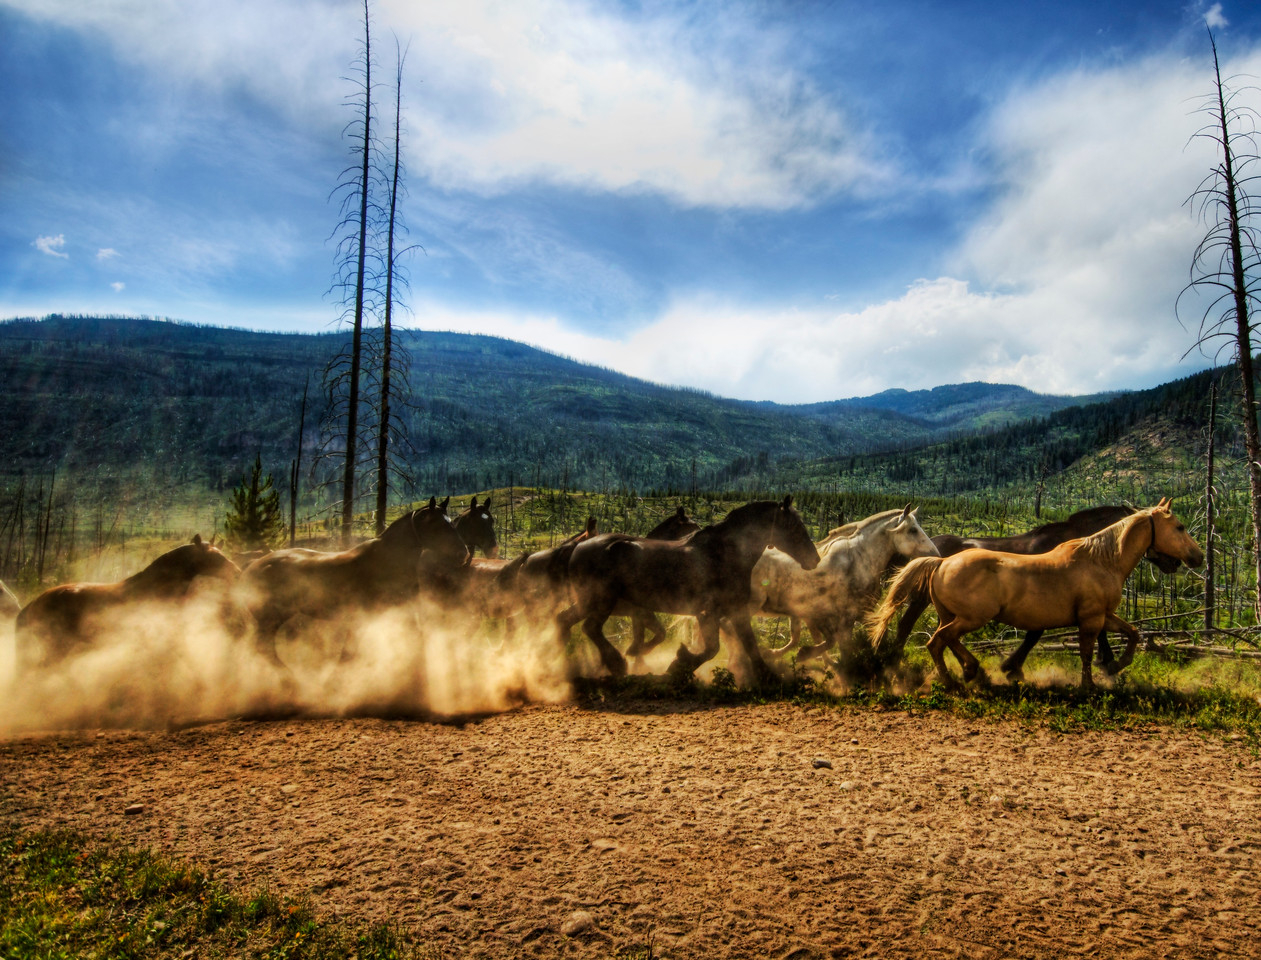 Stampede of the Wild Horses After a long hike through the mountains of Yellowstone, I came across over 40 horses sprinting from one meadow to the next.  I stepped behind a tree to get out of the way and shot this one.- Trey RatcliffClick here to read the rest of this post at the Stuck in Customs blog.